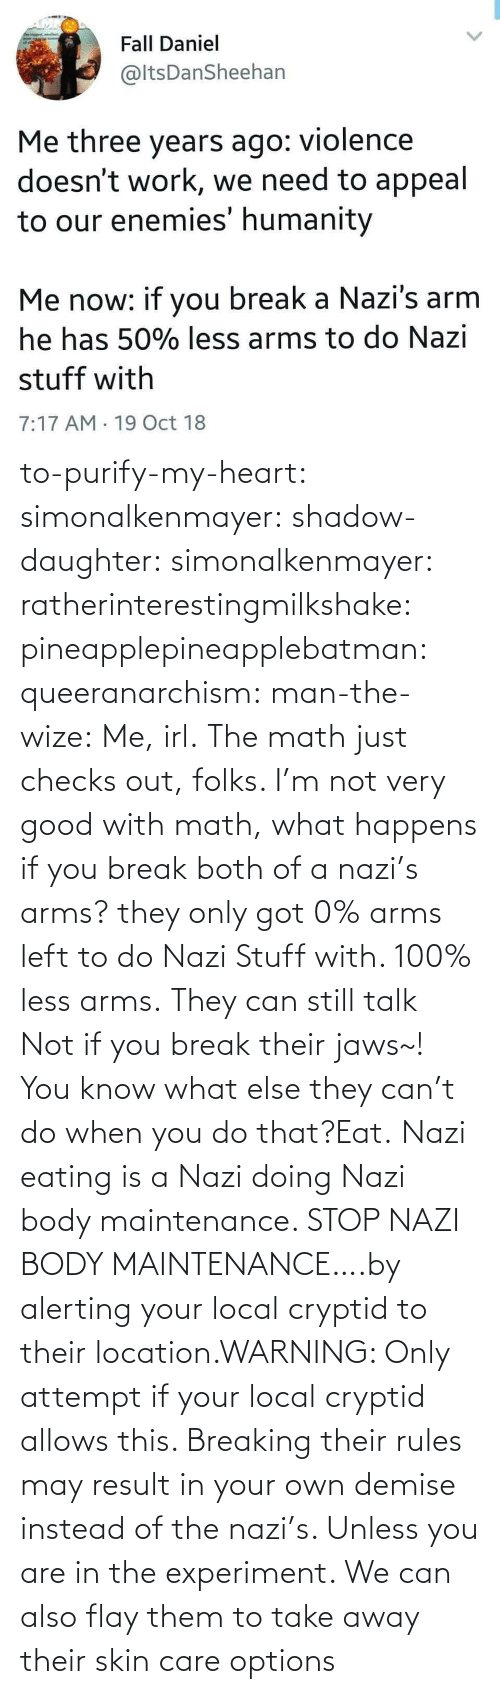 arms: to-purify-my-heart:  simonalkenmayer:  shadow-daughter: simonalkenmayer:  ratherinterestingmilkshake:  pineapplepineapplebatman:  queeranarchism:  man-the-wize: Me, irl. The math just checks out, folks.     I'm not very good with math, what happens if you break both of a nazi's arms?  they only got 0% arms left to do Nazi Stuff with. 100% less arms.  They can still talk  Not if you break their jaws~!  You know what else they can't do when you do that?Eat.   Nazi eating is a Nazi doing Nazi body maintenance. STOP NAZI BODY MAINTENANCE….by alerting your local cryptid to their location.WARNING: Only attempt if your local cryptid allows this. Breaking their rules may result in your own demise instead of the nazi's. Unless you are in the experiment.    We can also flay them to take away their skin care options